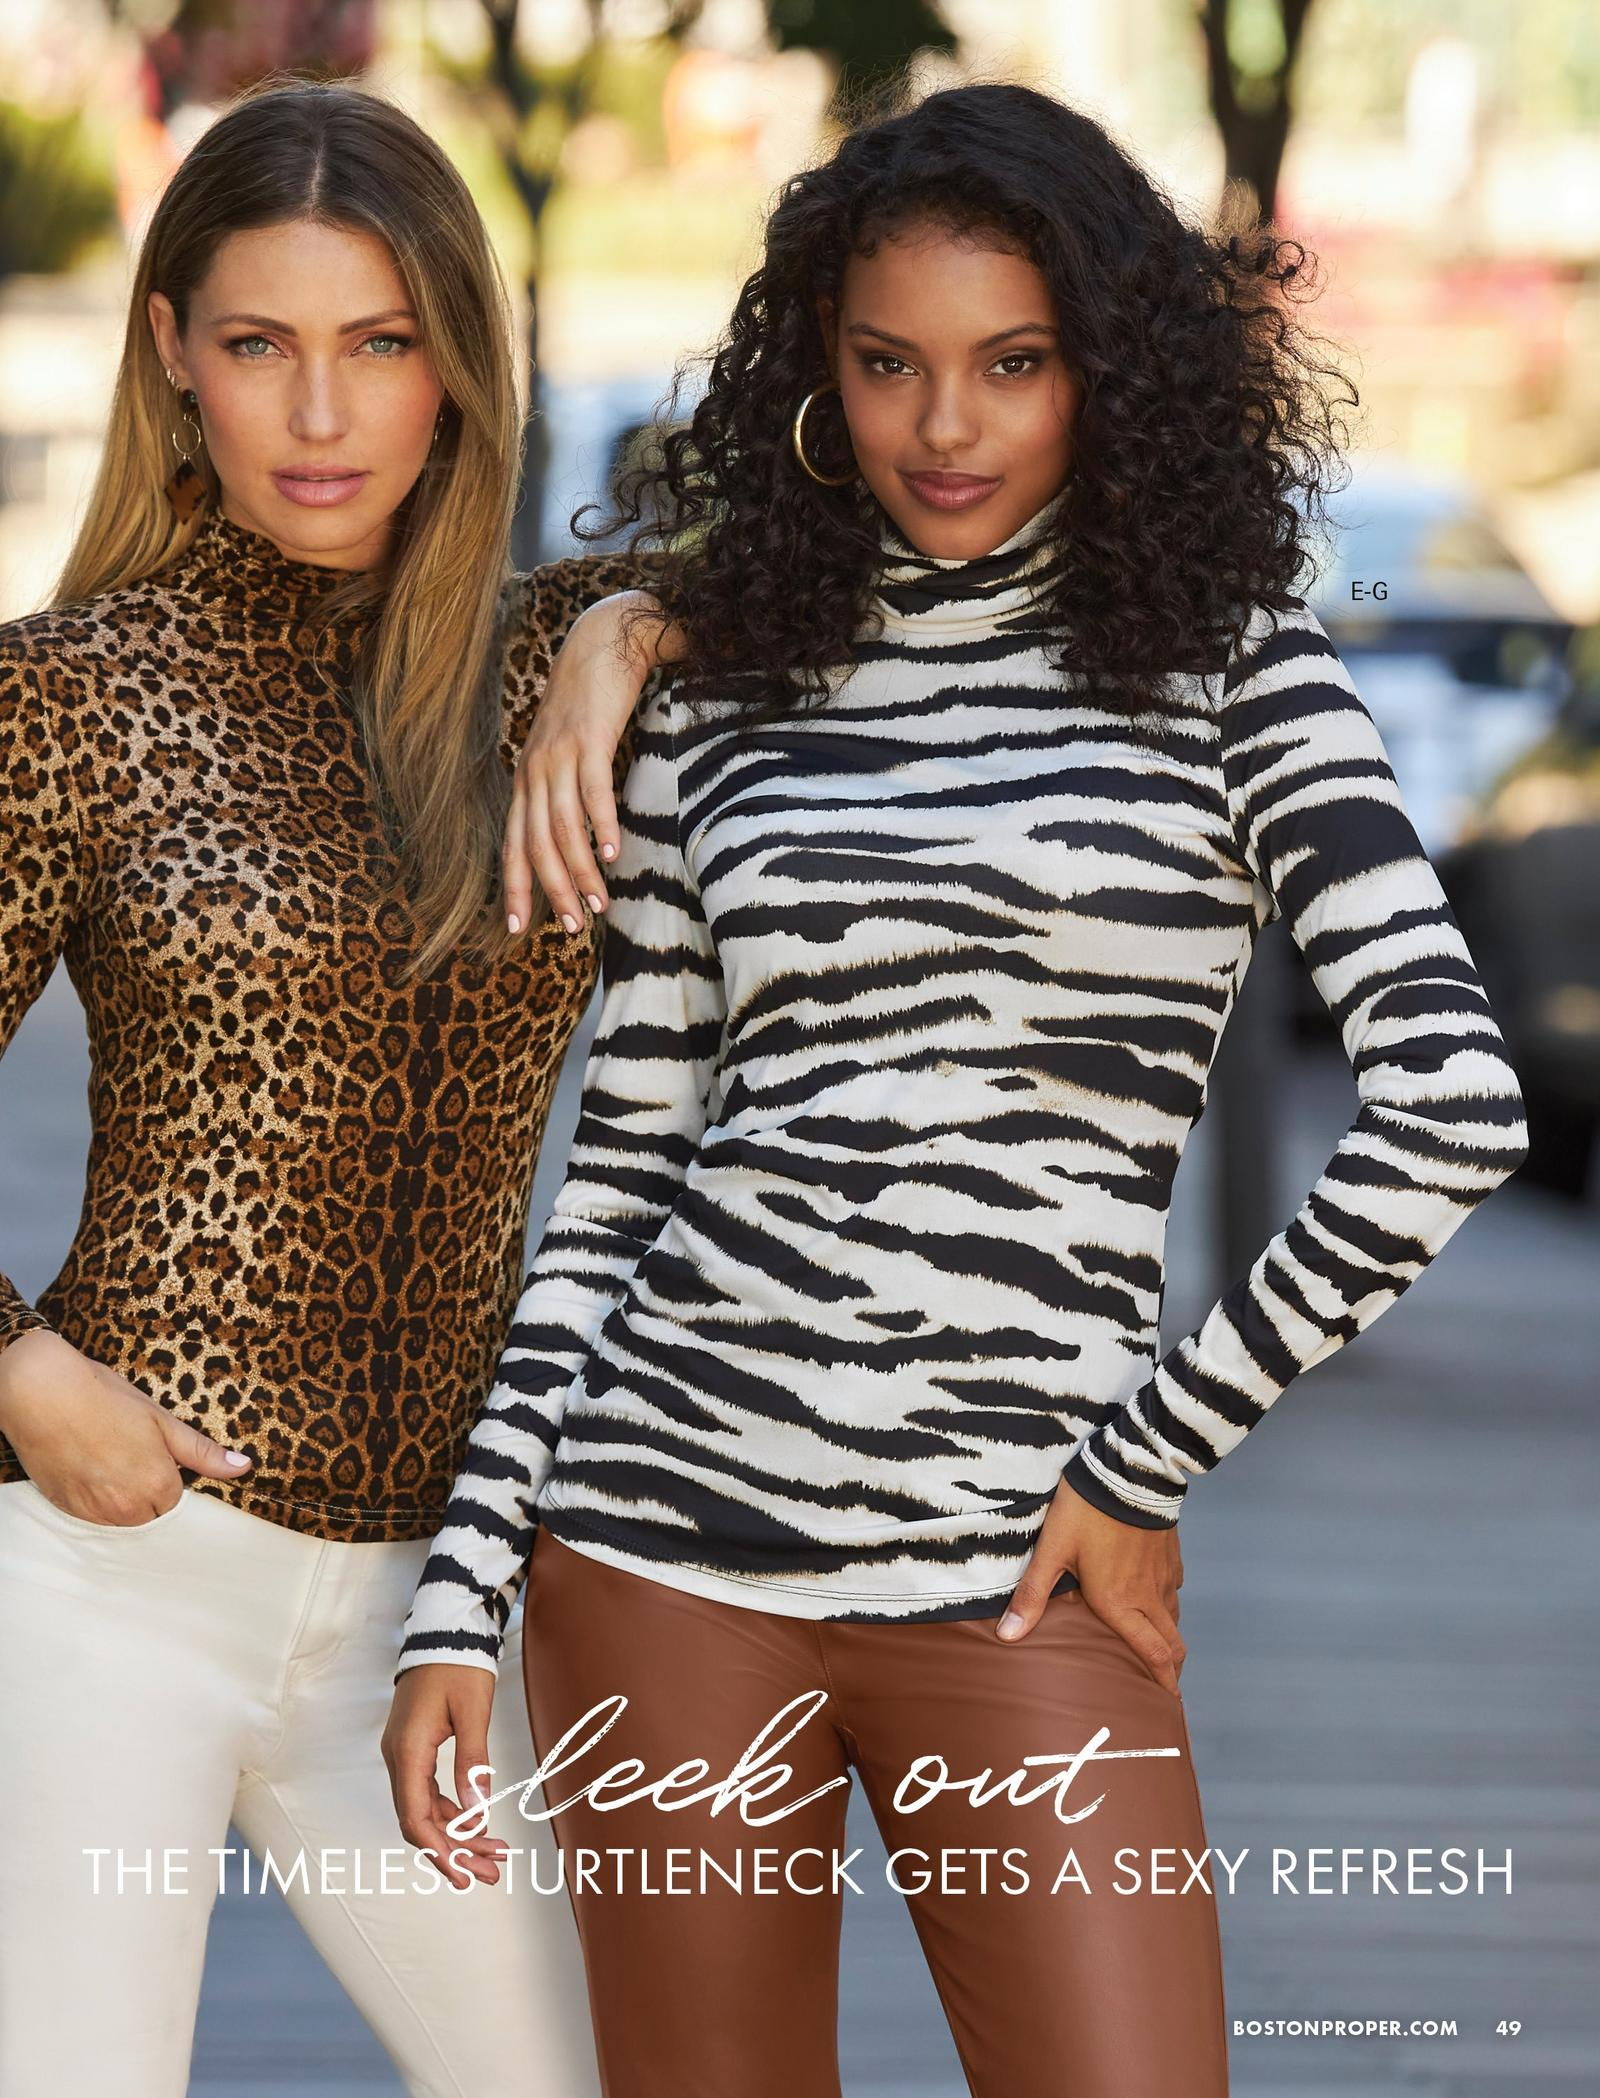 left model wearing a brown leopard print turtleneck long-sleeve top and white bootcut jeans. right model wearing a black and white zebra print turtleneck long-sleeve top and brown faux-leather jeans.